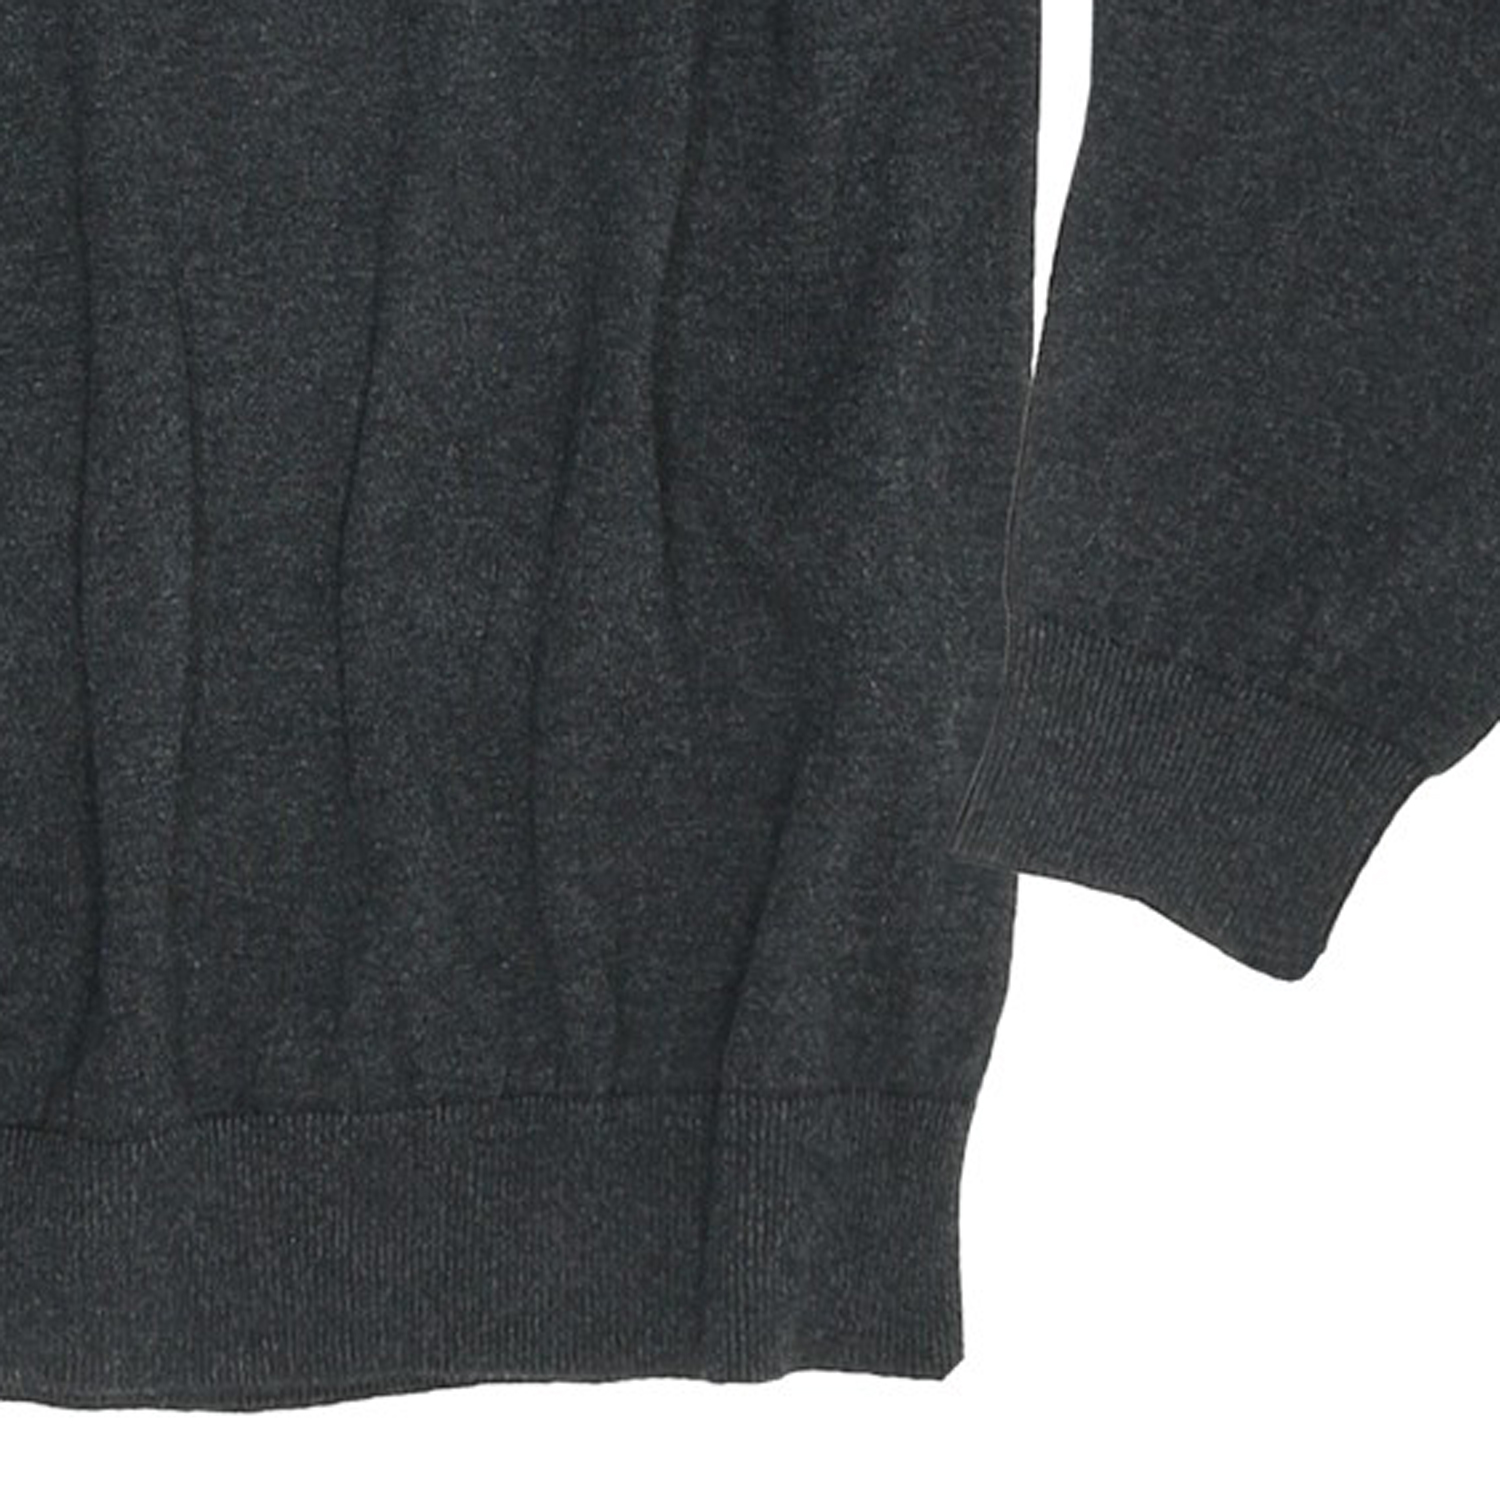 Detail Image to Knit sweater in grey by Casamoda in plus sizes up to 6 XL